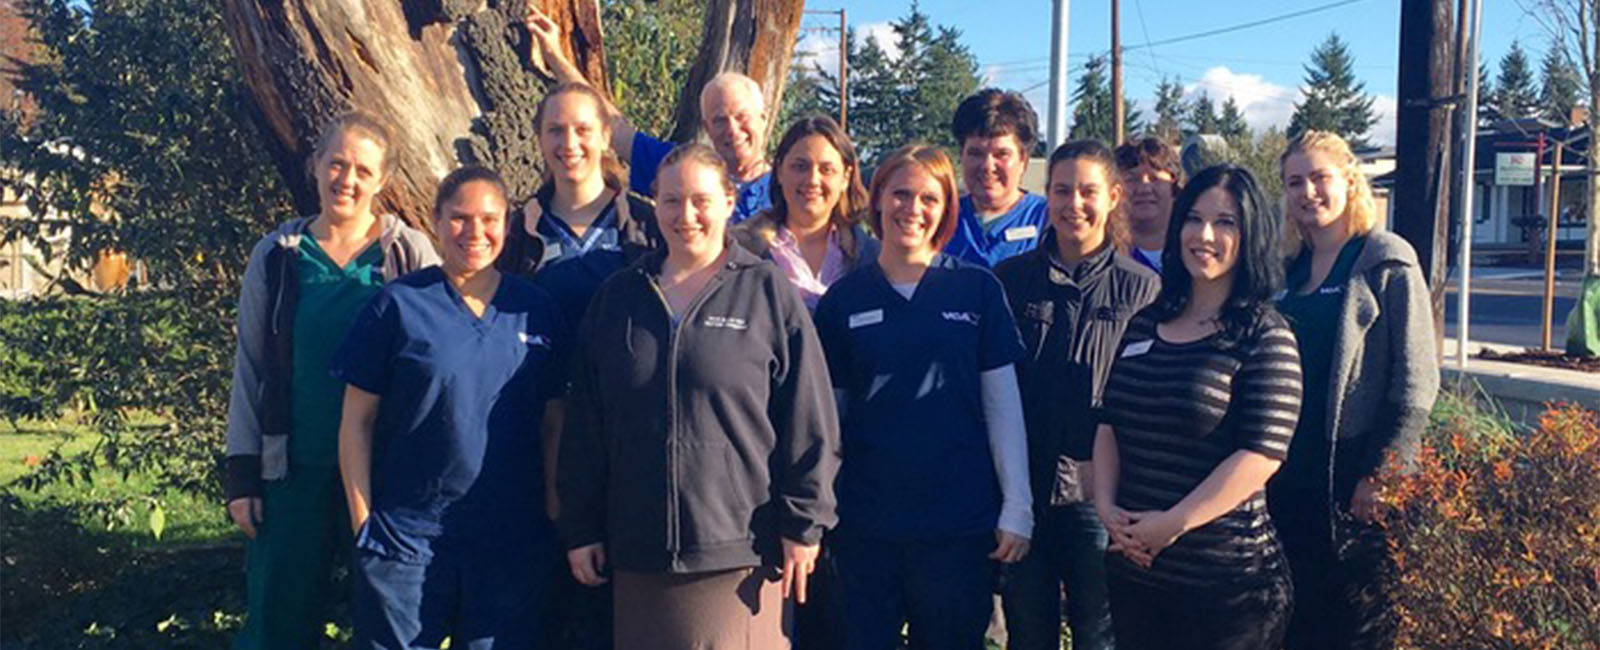 Homepage Team Picture of VCA Rose Hill Animal Hospital